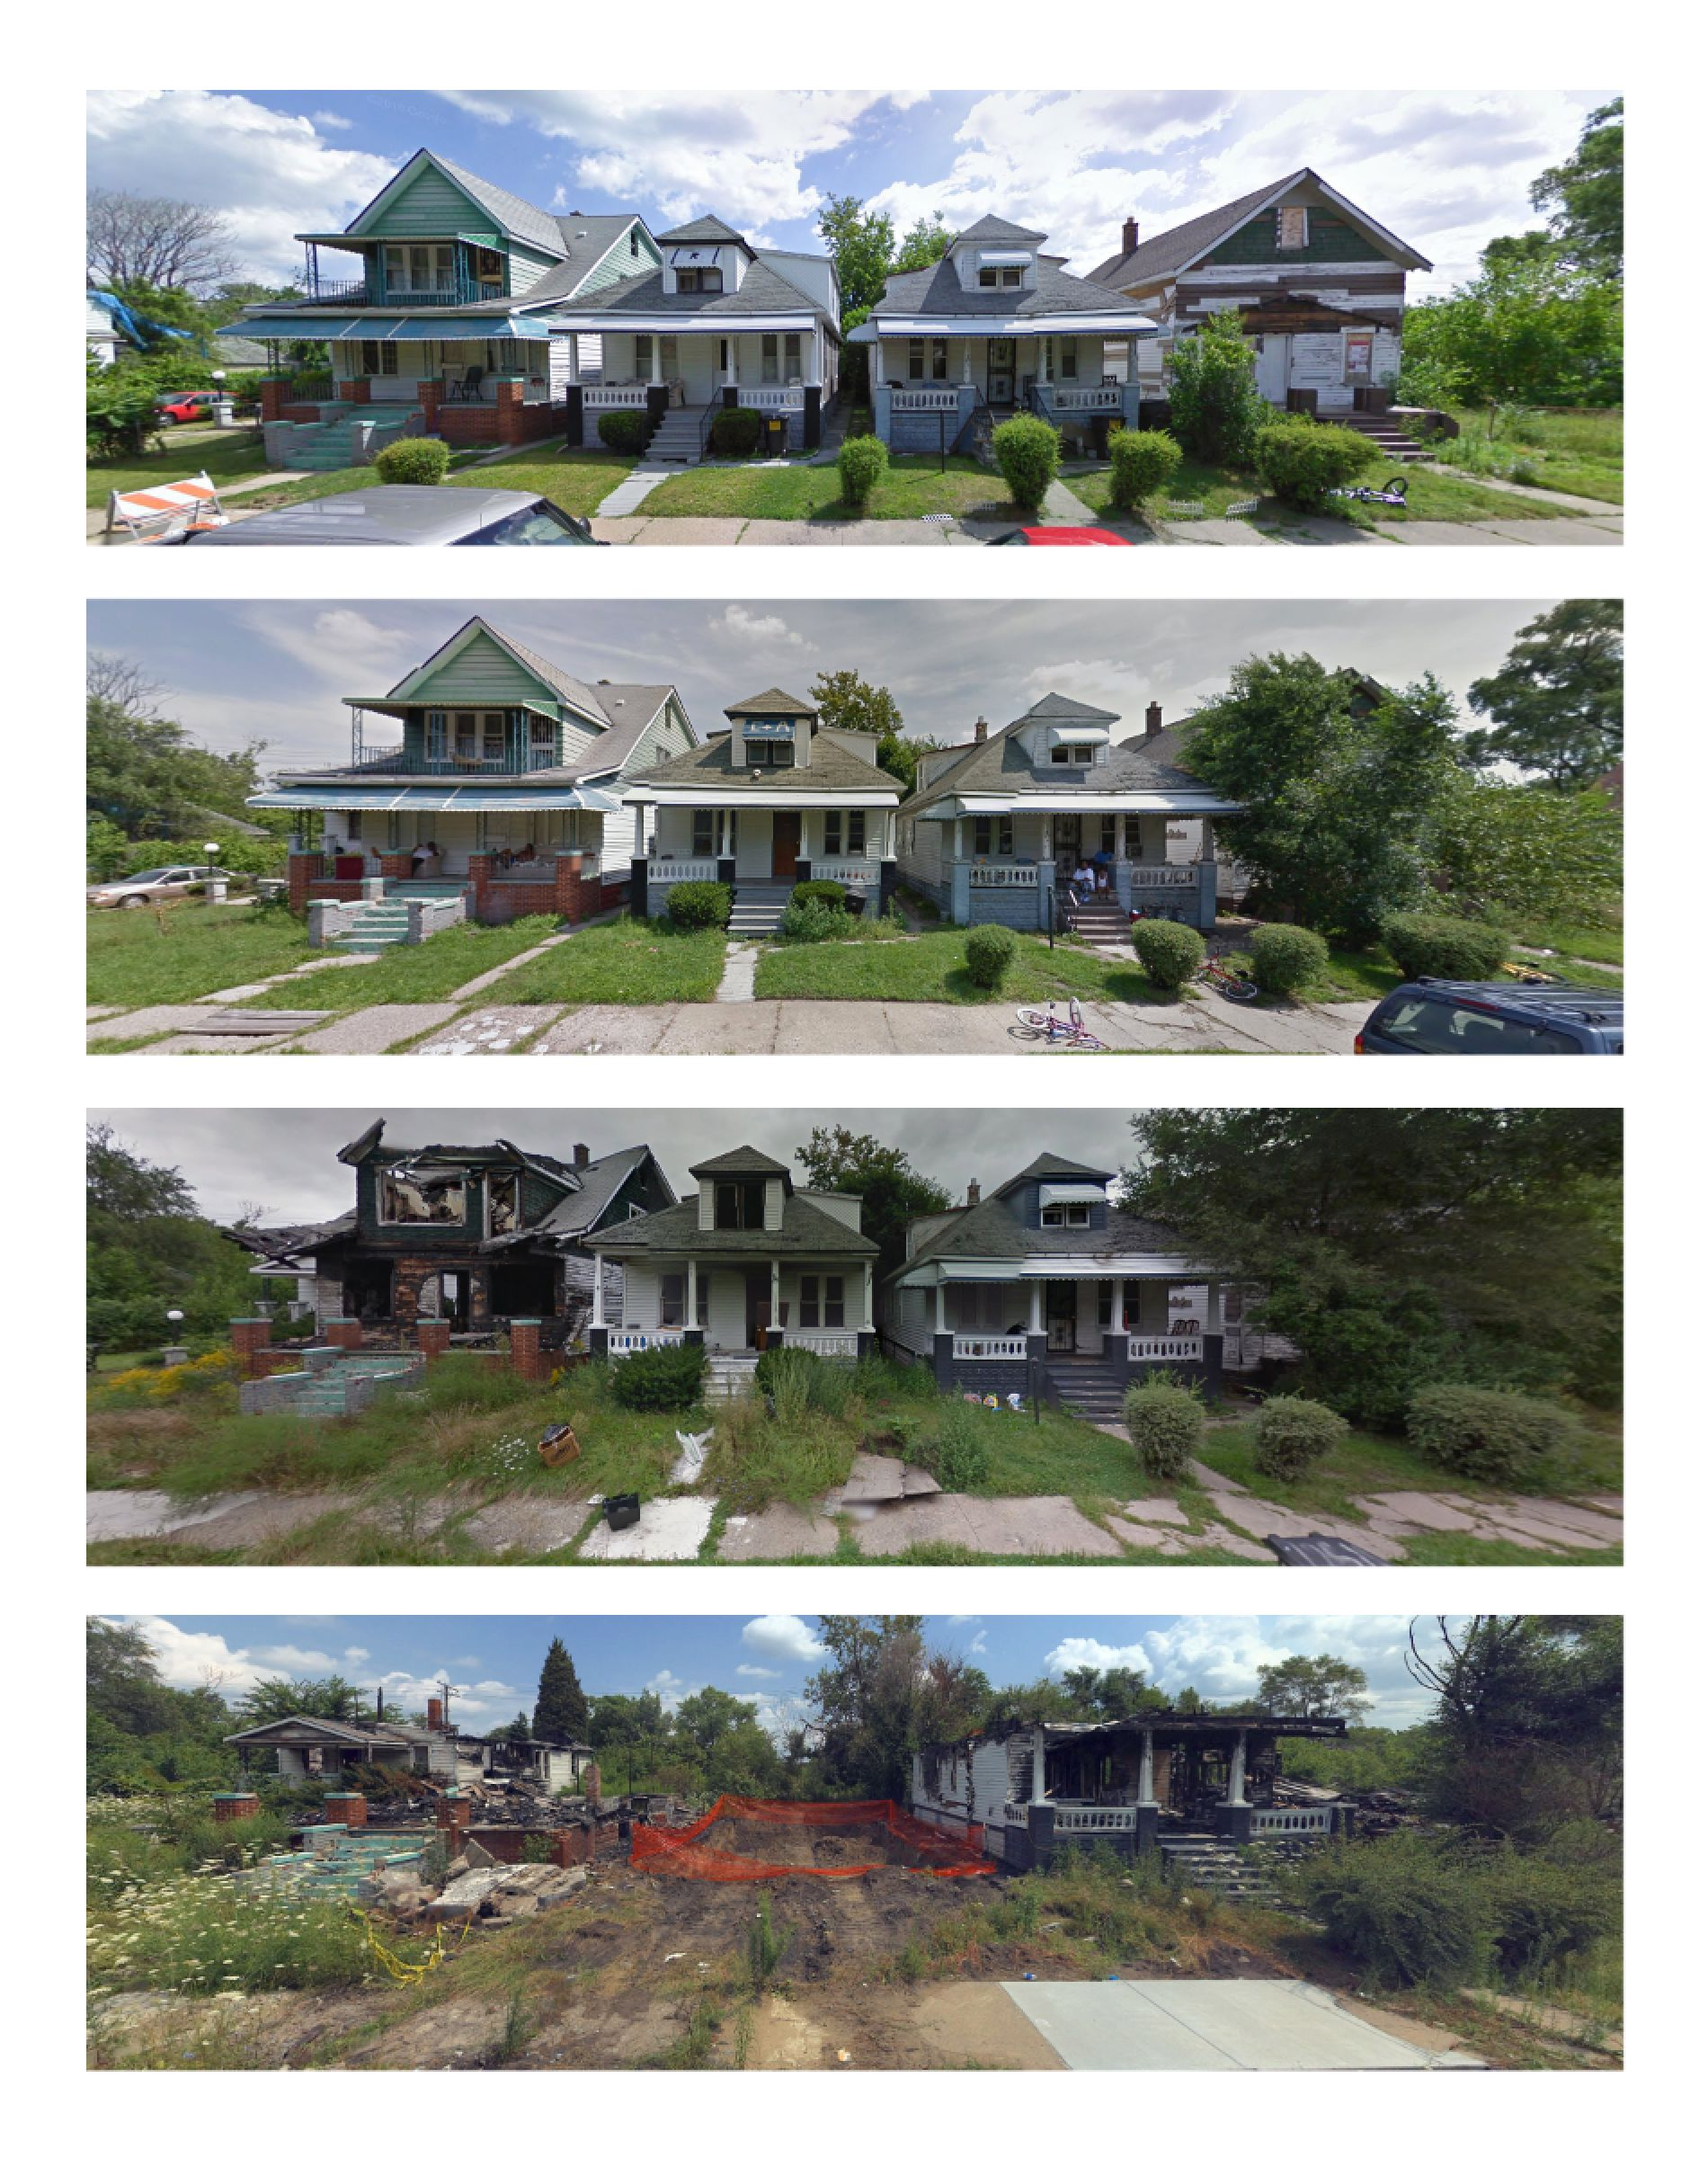 This Mackay Street block isshown in Google and Bing screenshotsfrom September 2013 and August 2014. Alex Alsup us